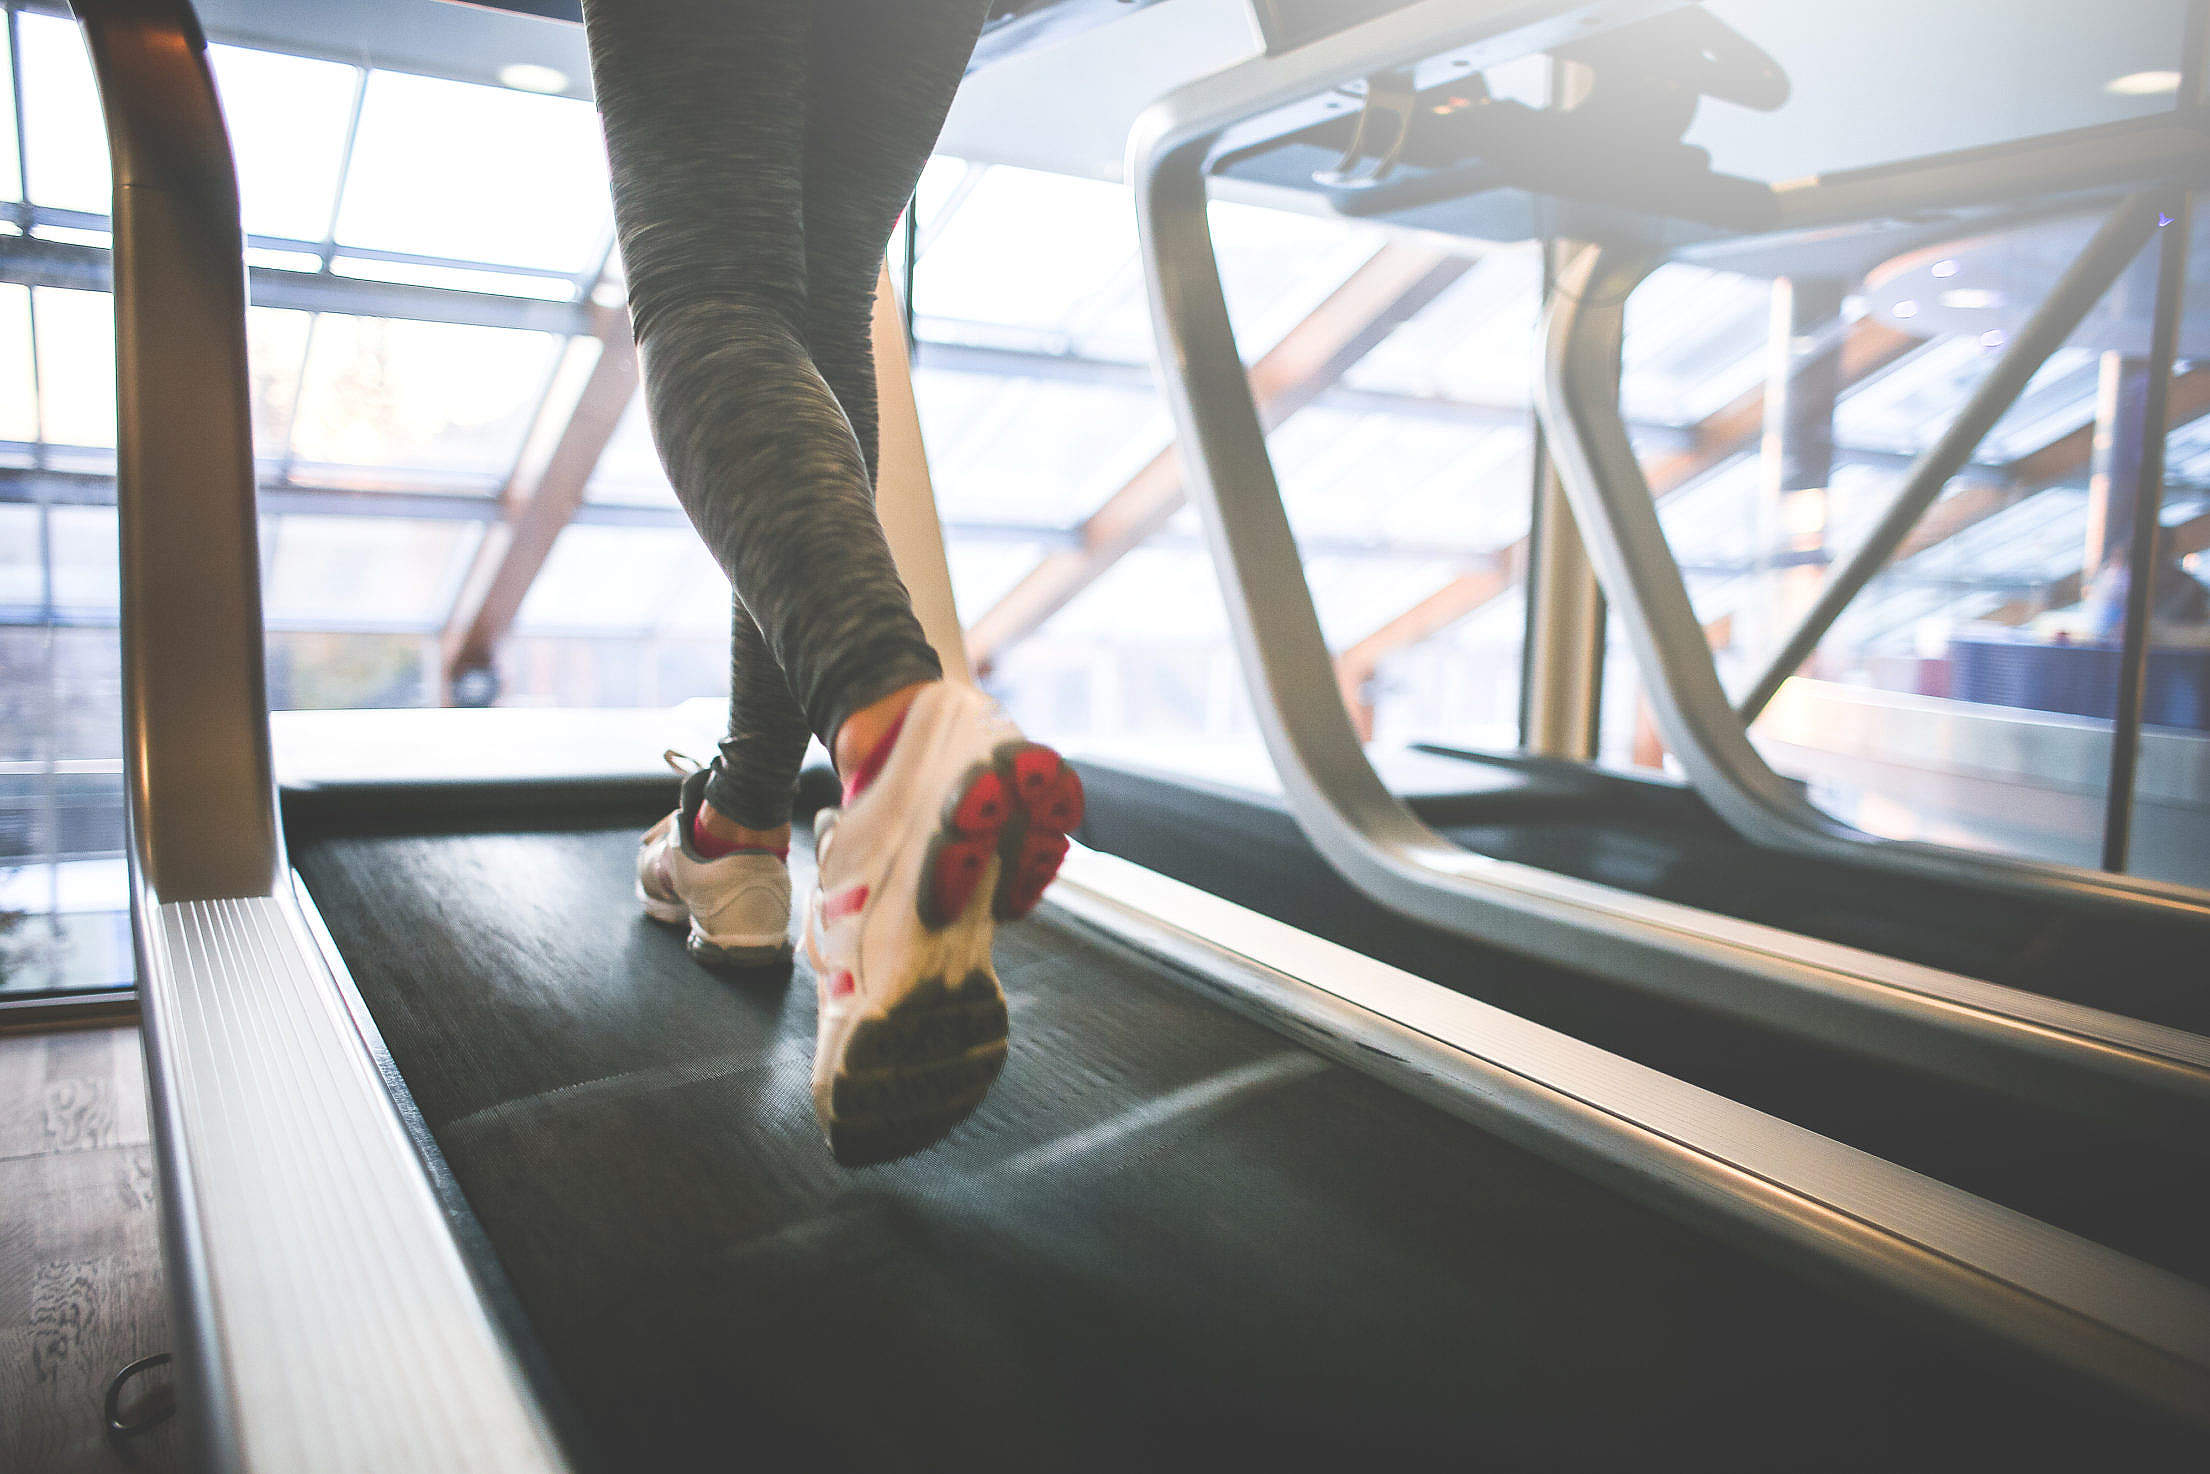 Cardio Running on a Treadmill Free Stock Photo